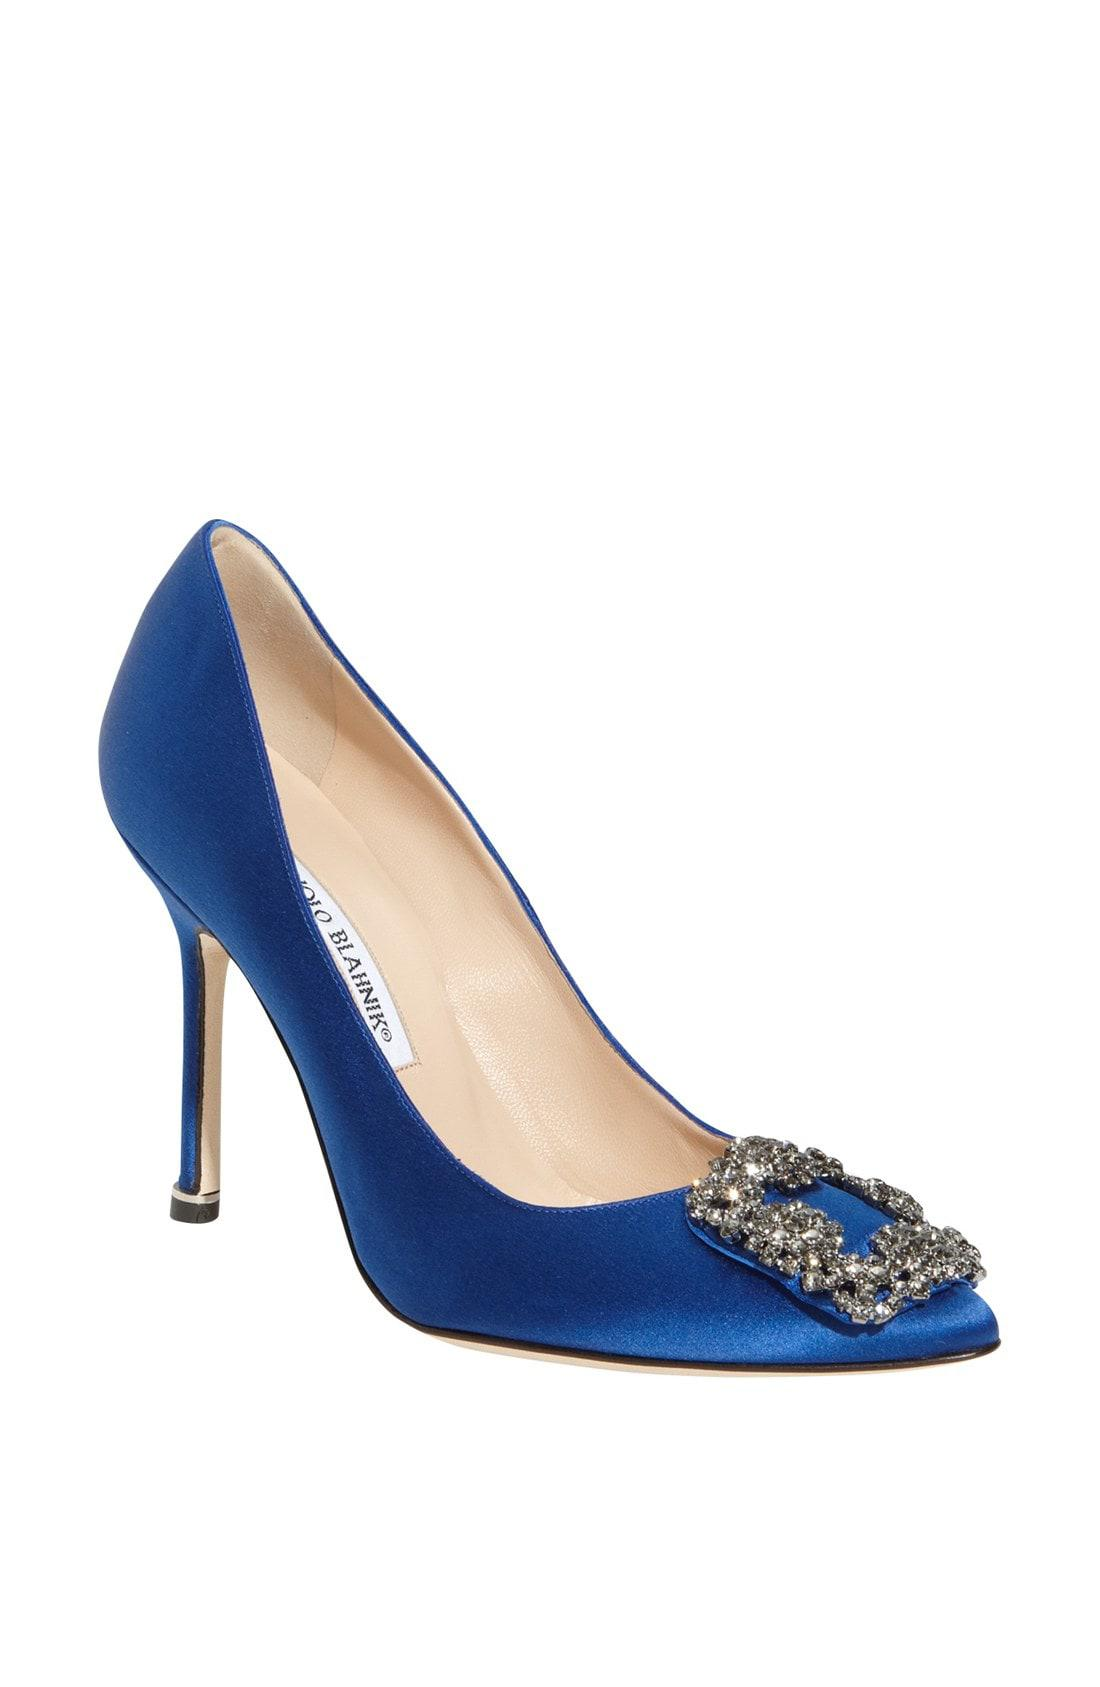 Discussion on this topic: Manolo Blahnik's jewellery debut, manolo-blahniks-jewellery-debut/